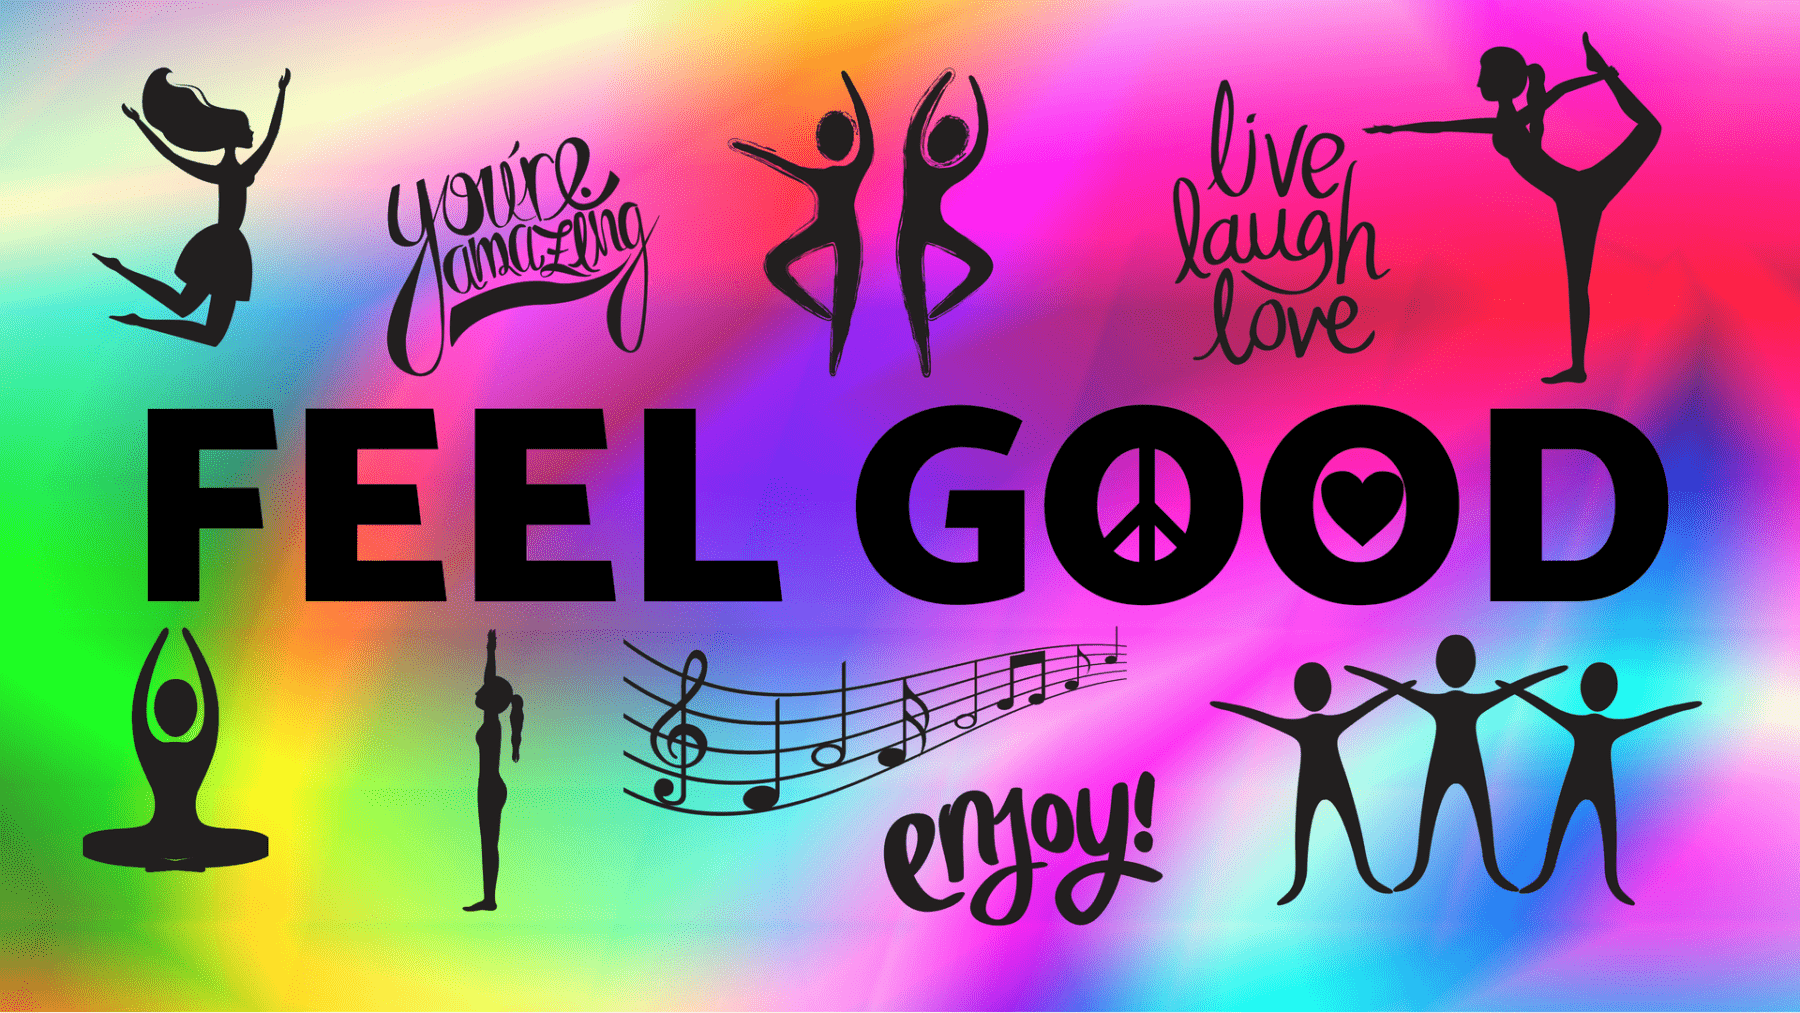 What makes you feel good?